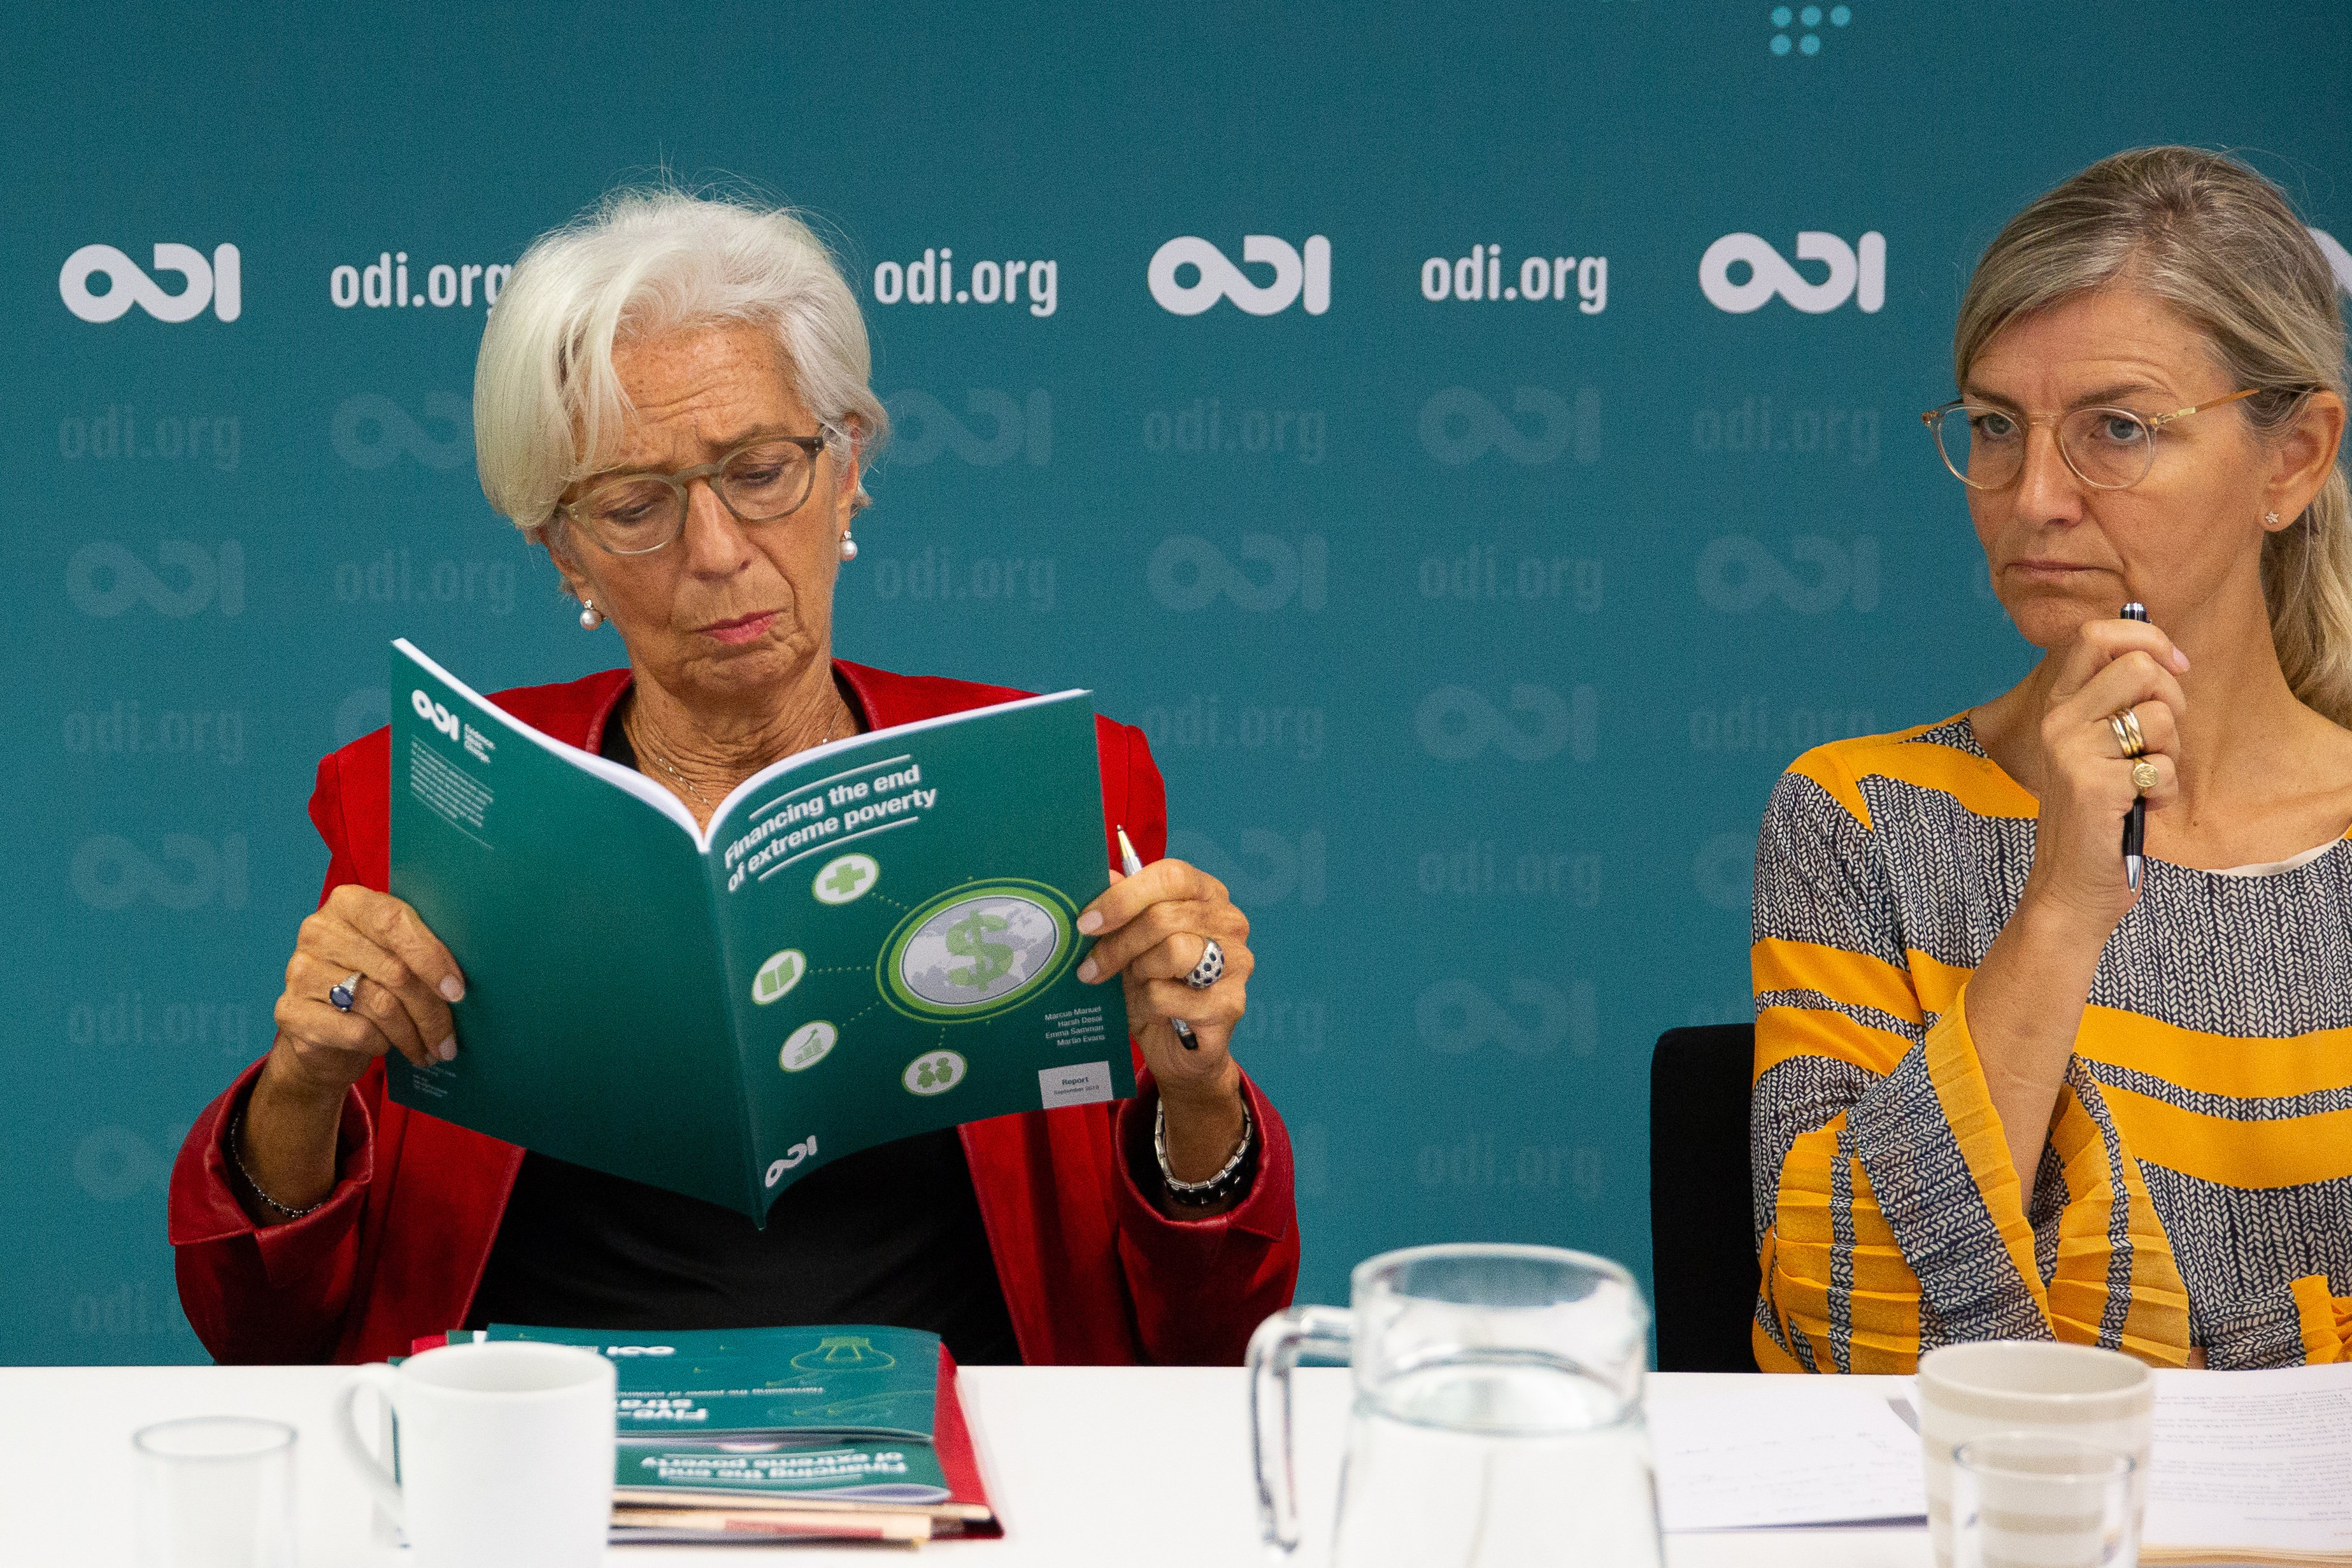 Christine Lagarde, Managing Director of the IMF, reading ODI report at a roundtable event with Ulla Tørnæs, Danish Minister for Development Cooperation © Hanna-Katrina Jedrosz 2018